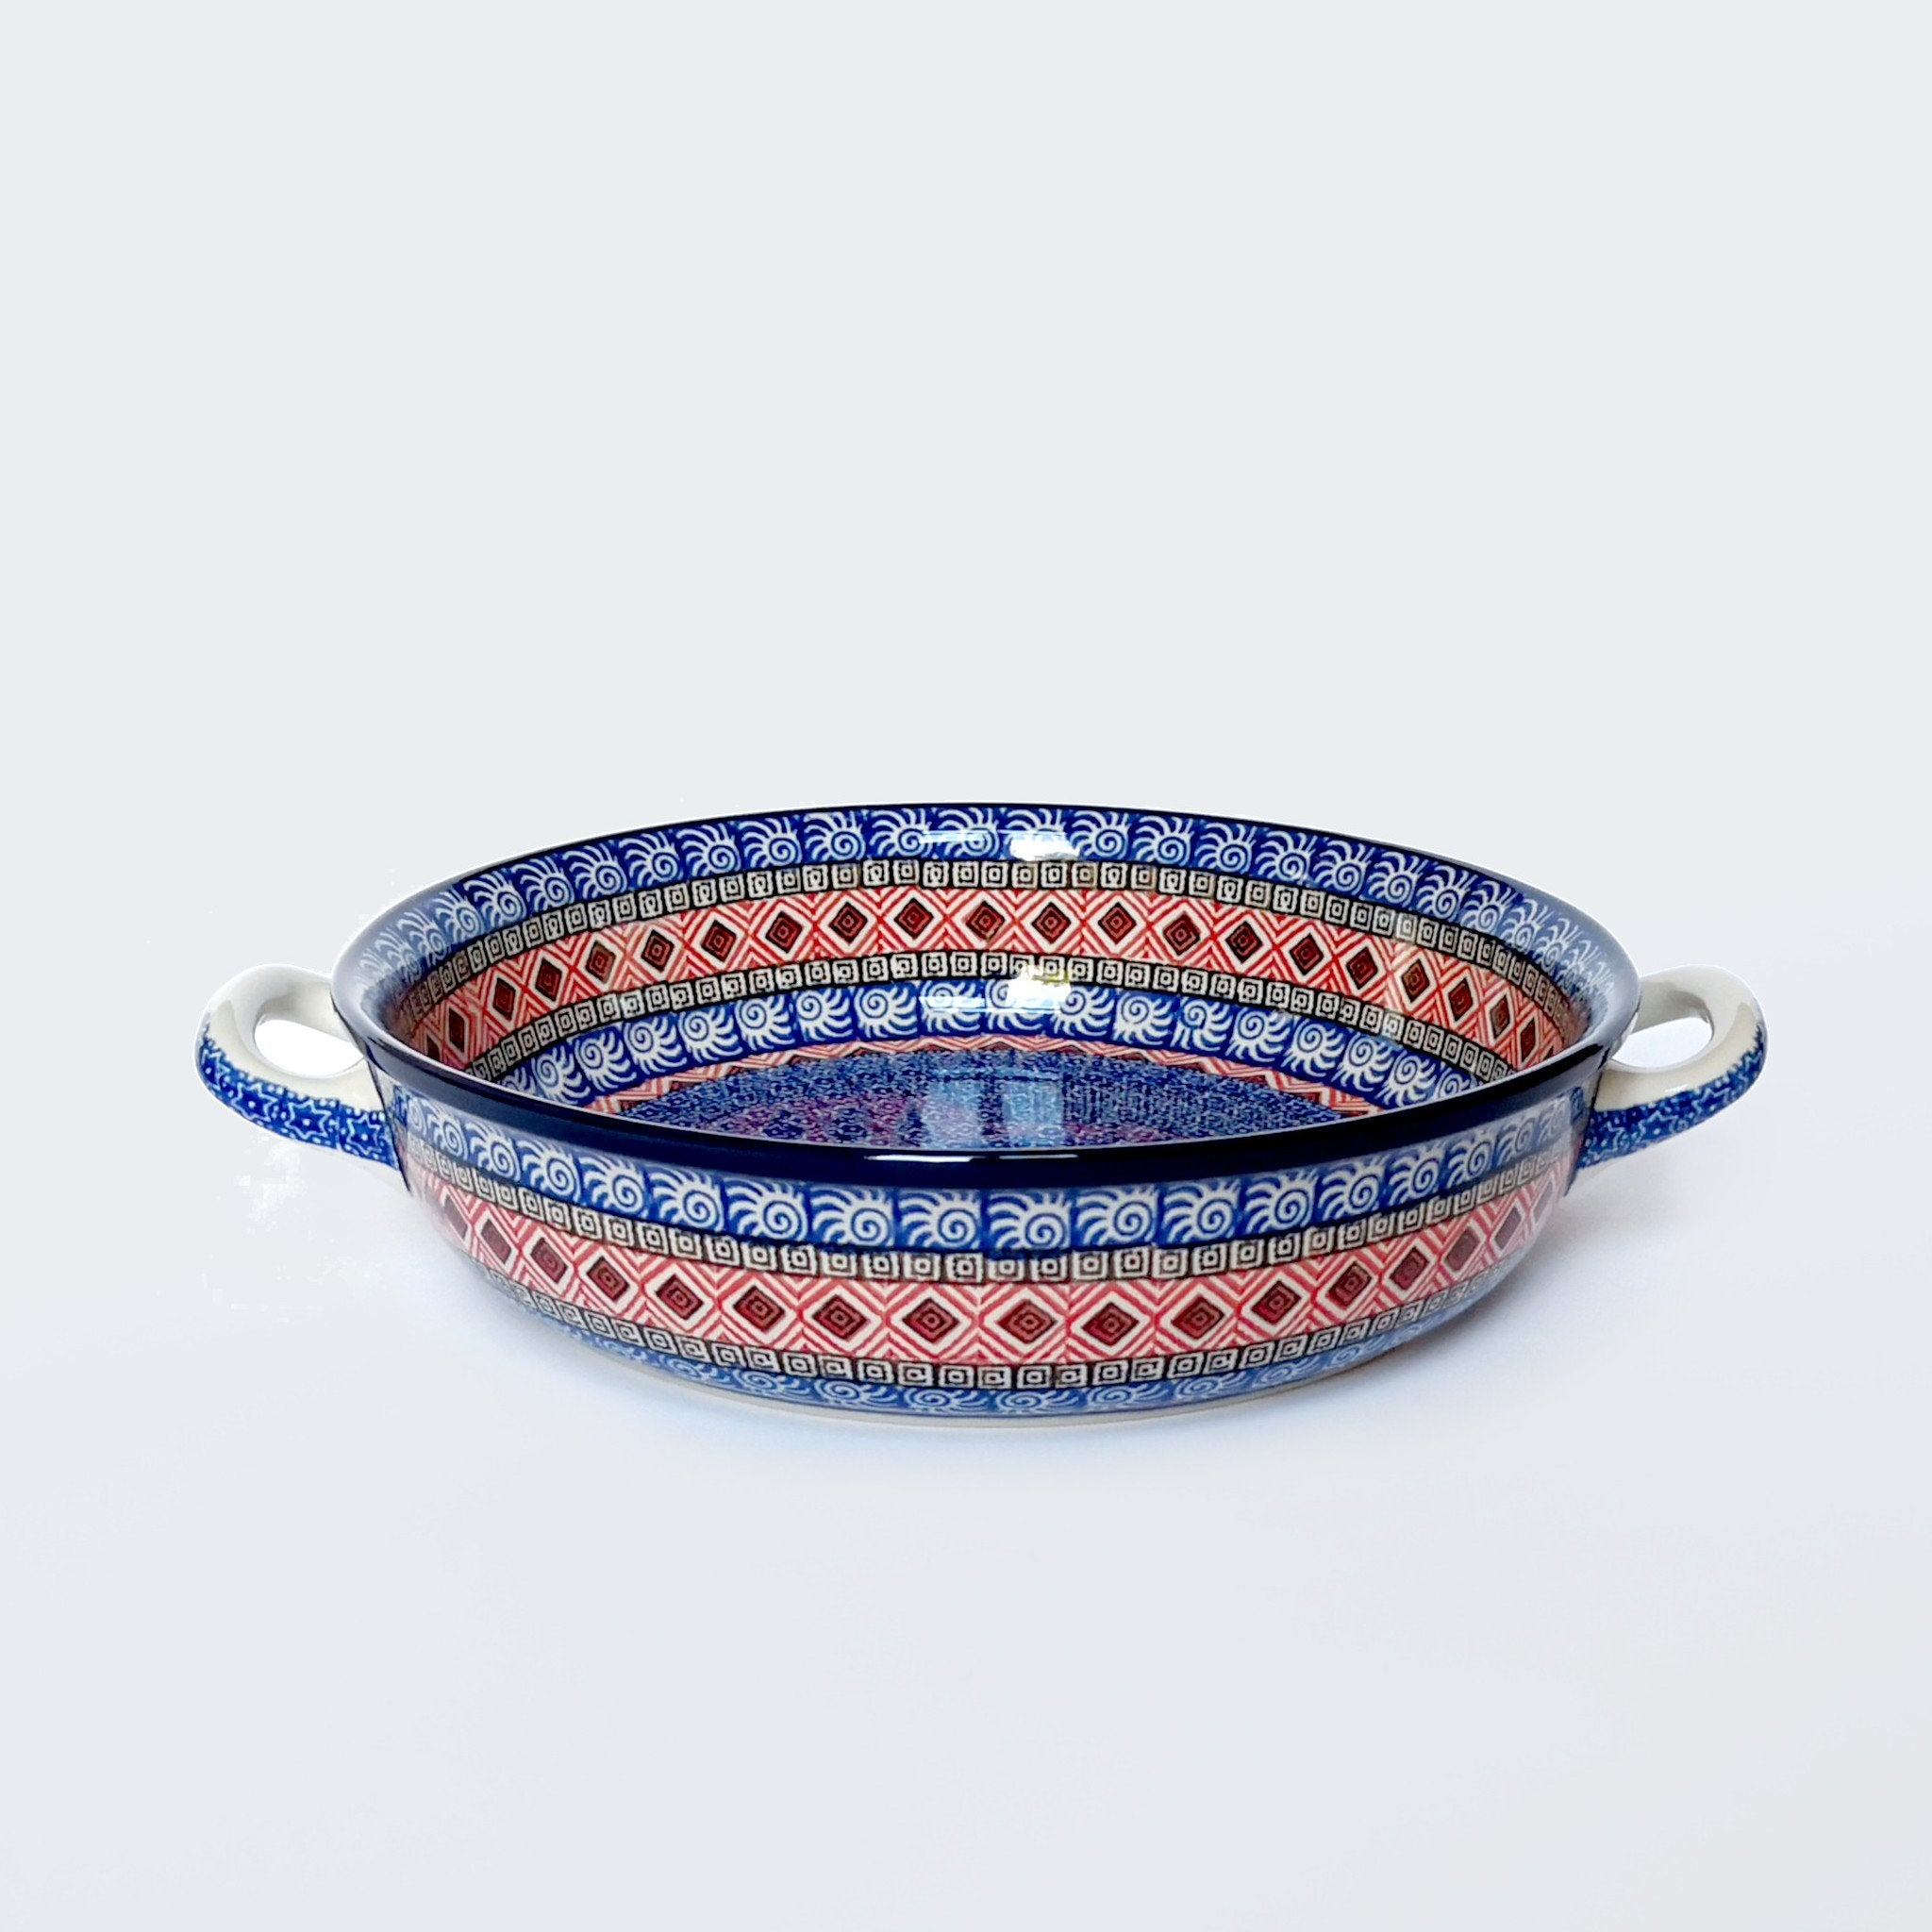 Large round red and blue handled oven dish in Polish Pottery made by Ceramika Artystyczna